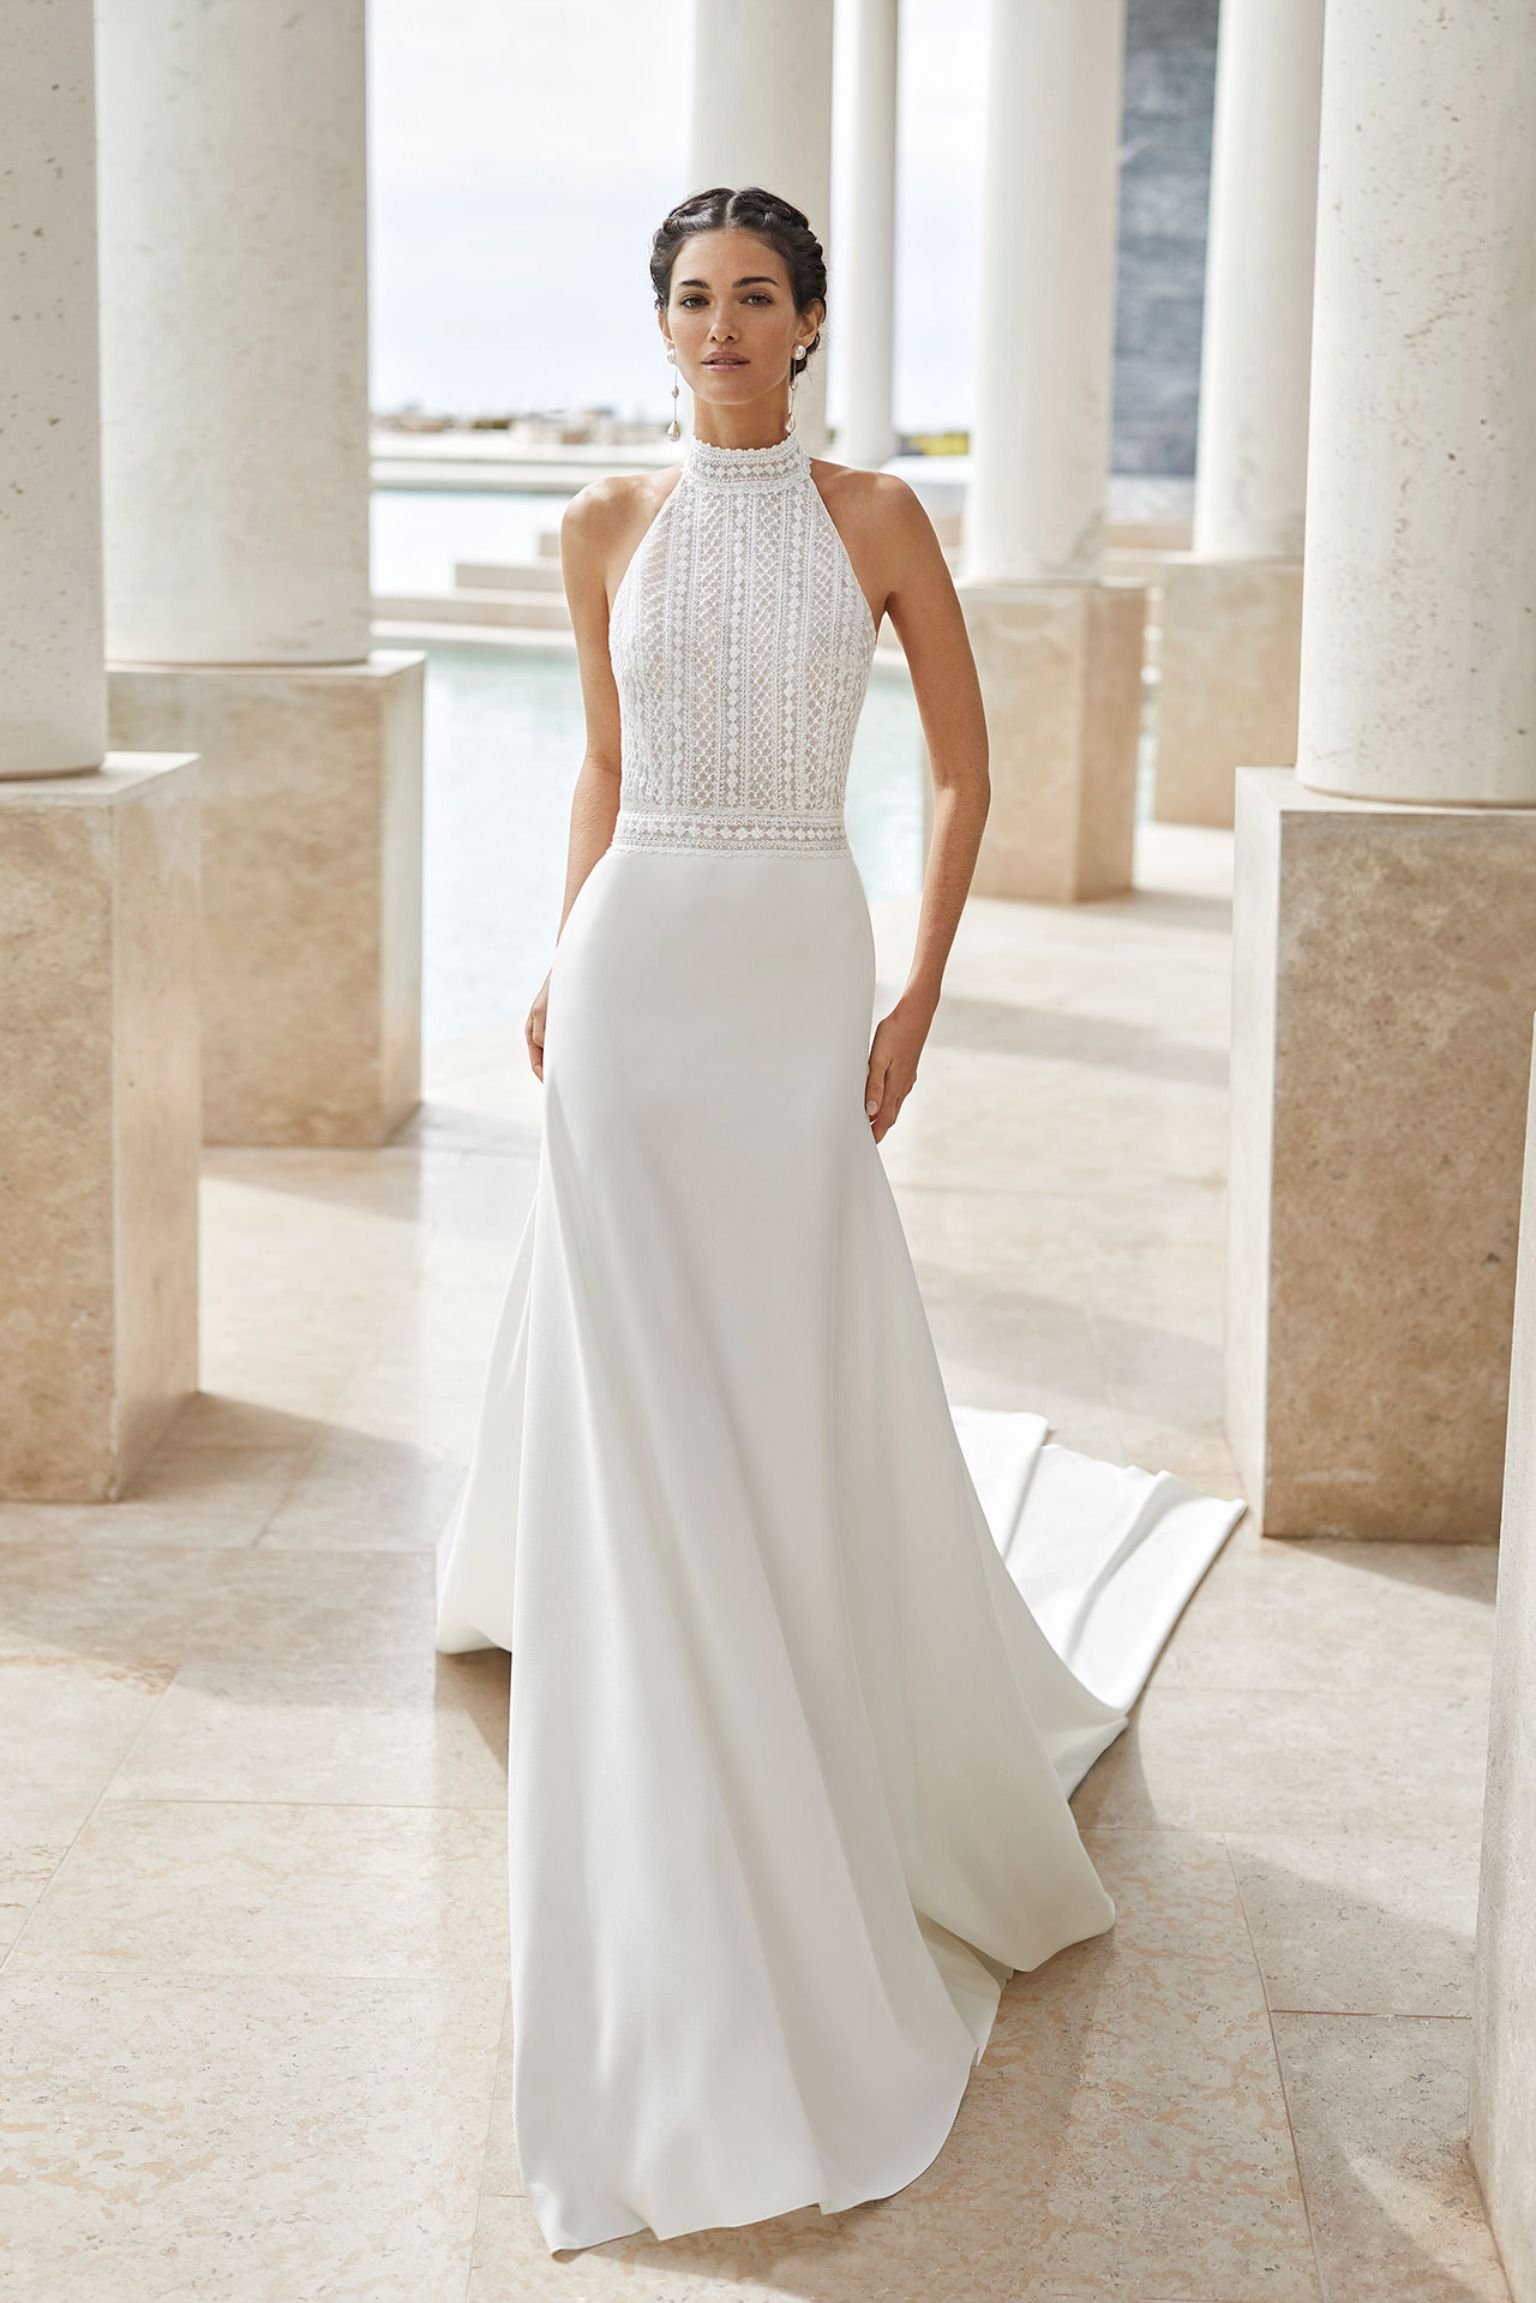 Lightweight aline wedding dress in beaded lace and crepe